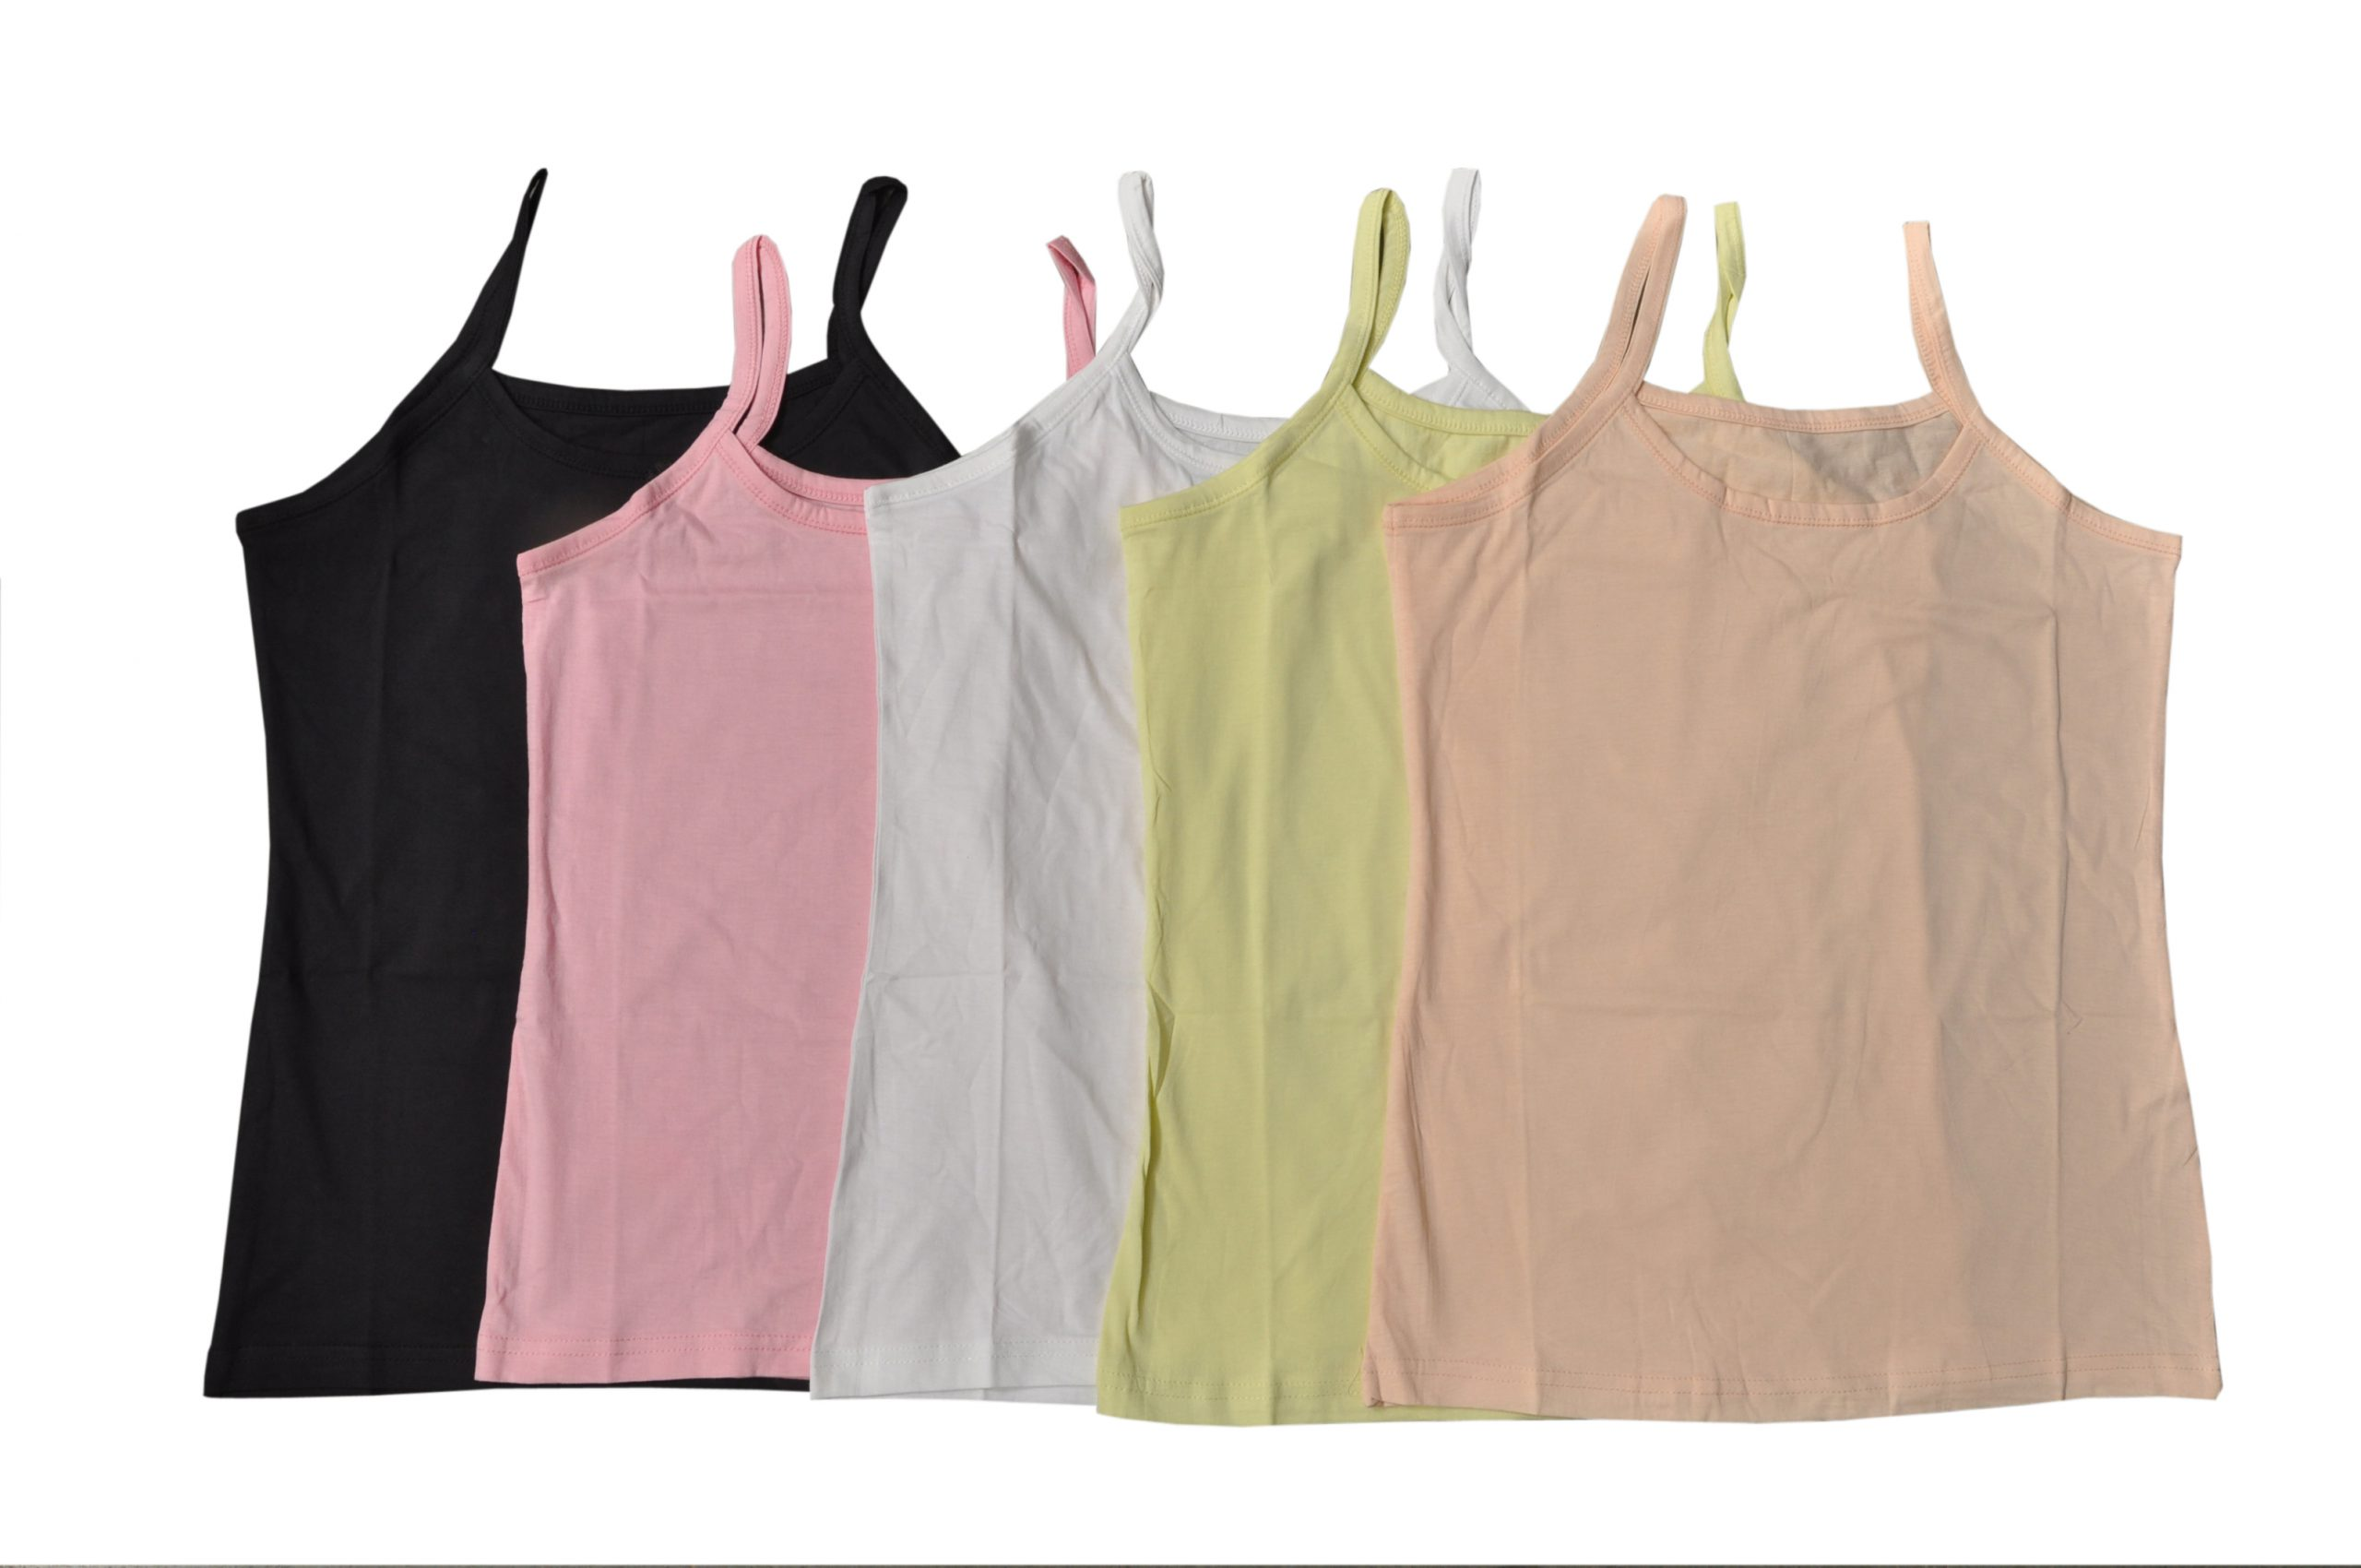 Johnson Multicolors Fashion Camisole Women's (Pack Of 5)